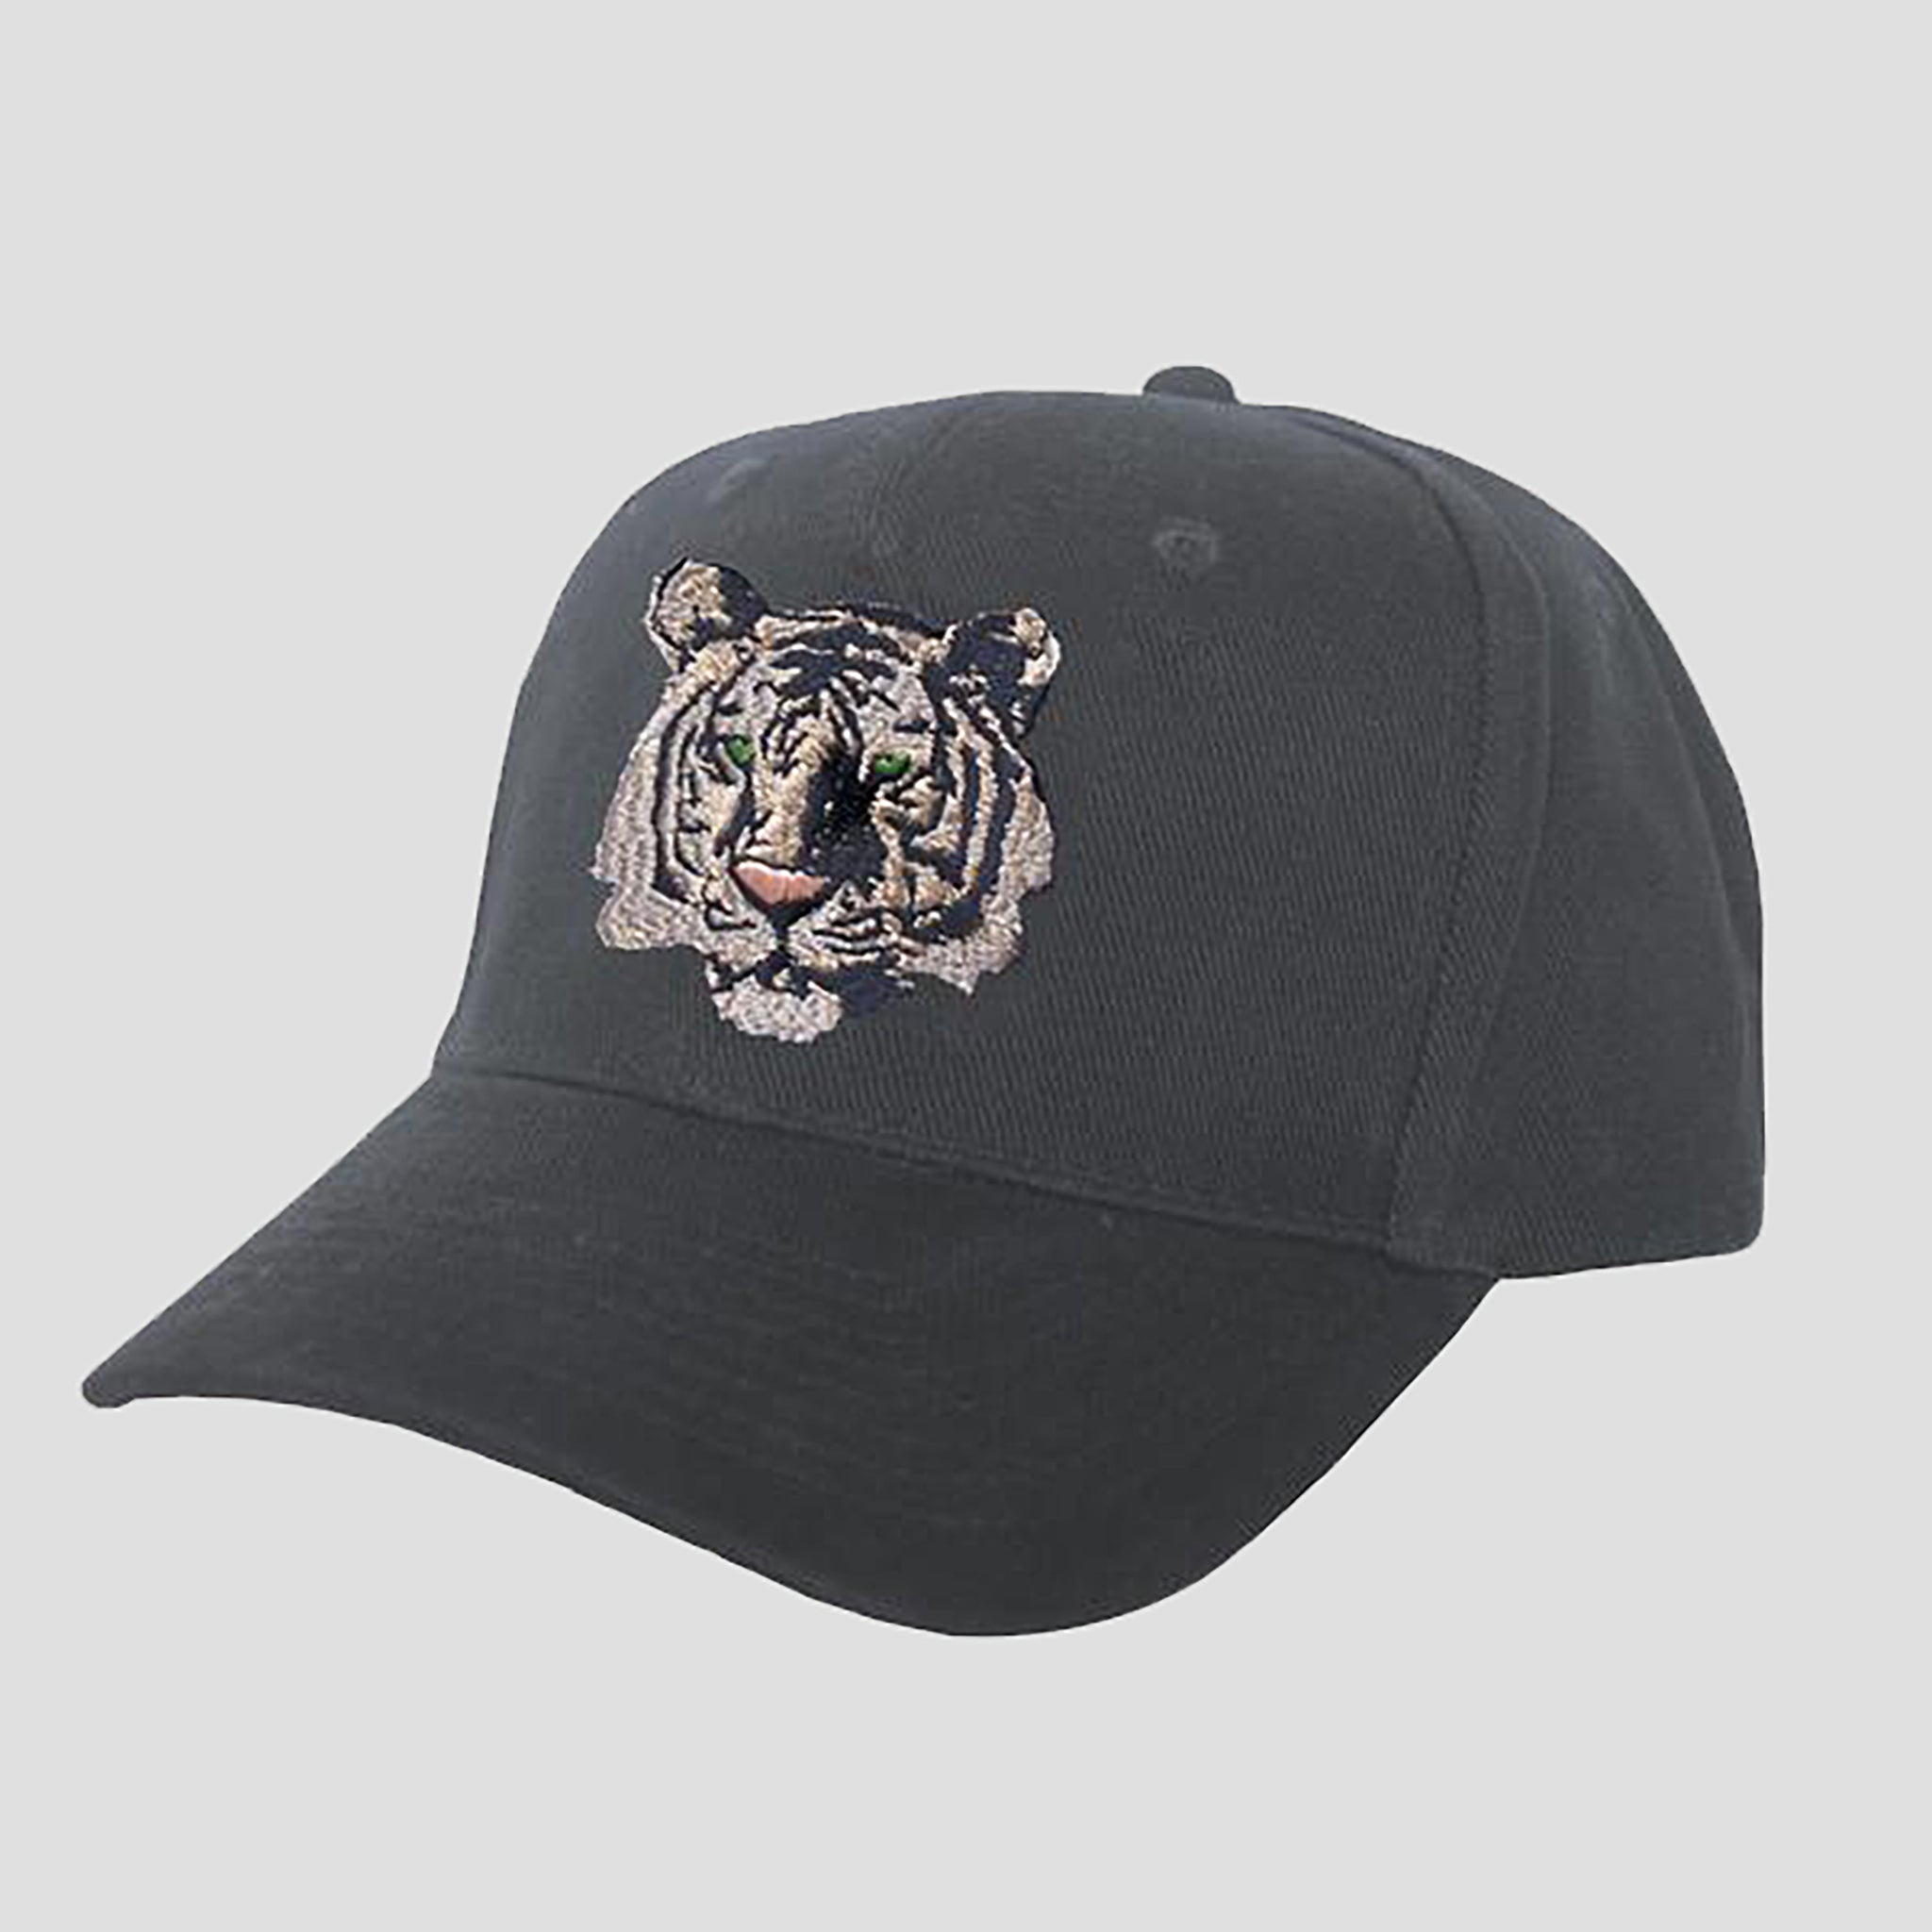 DANDY STAR TIGER CAP